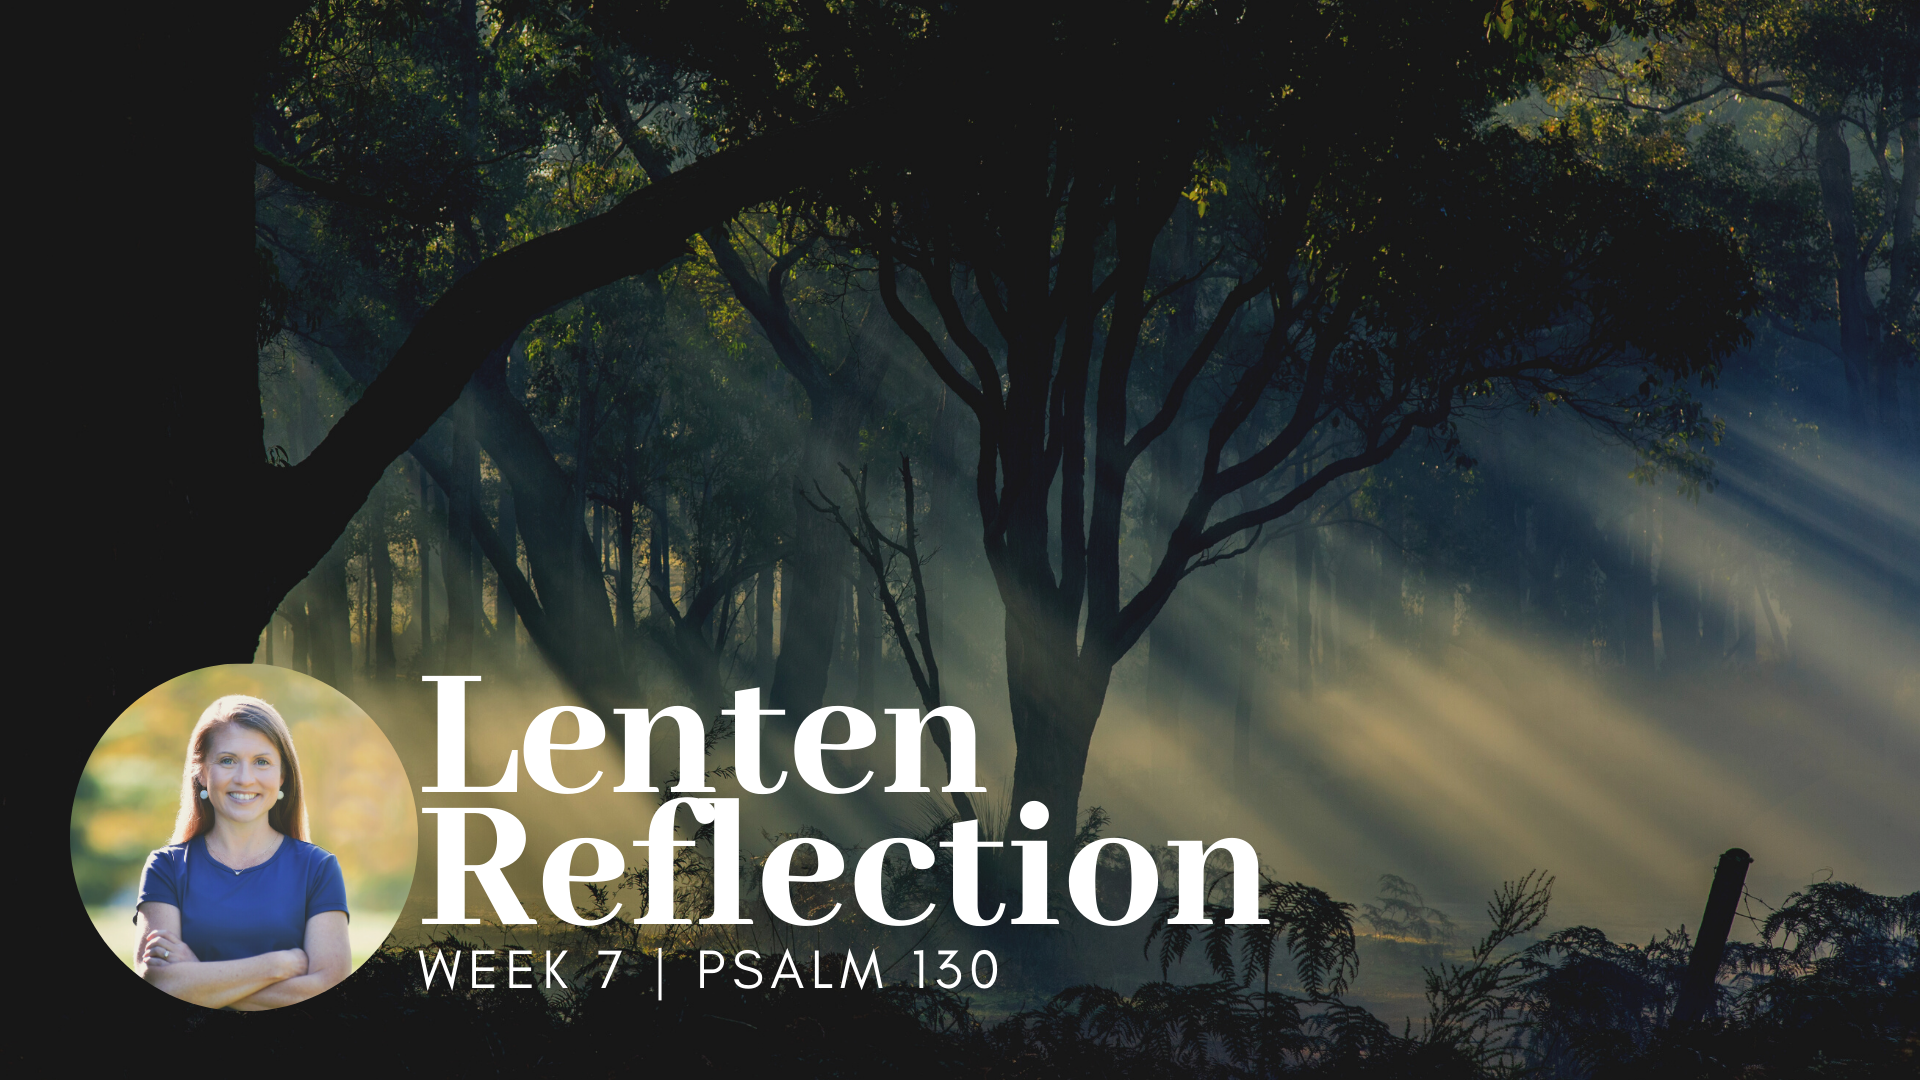 picture of trees in a forest with light slanting through the trees with white text overlay that says Lenten Reflection Week 7 Psalm 130